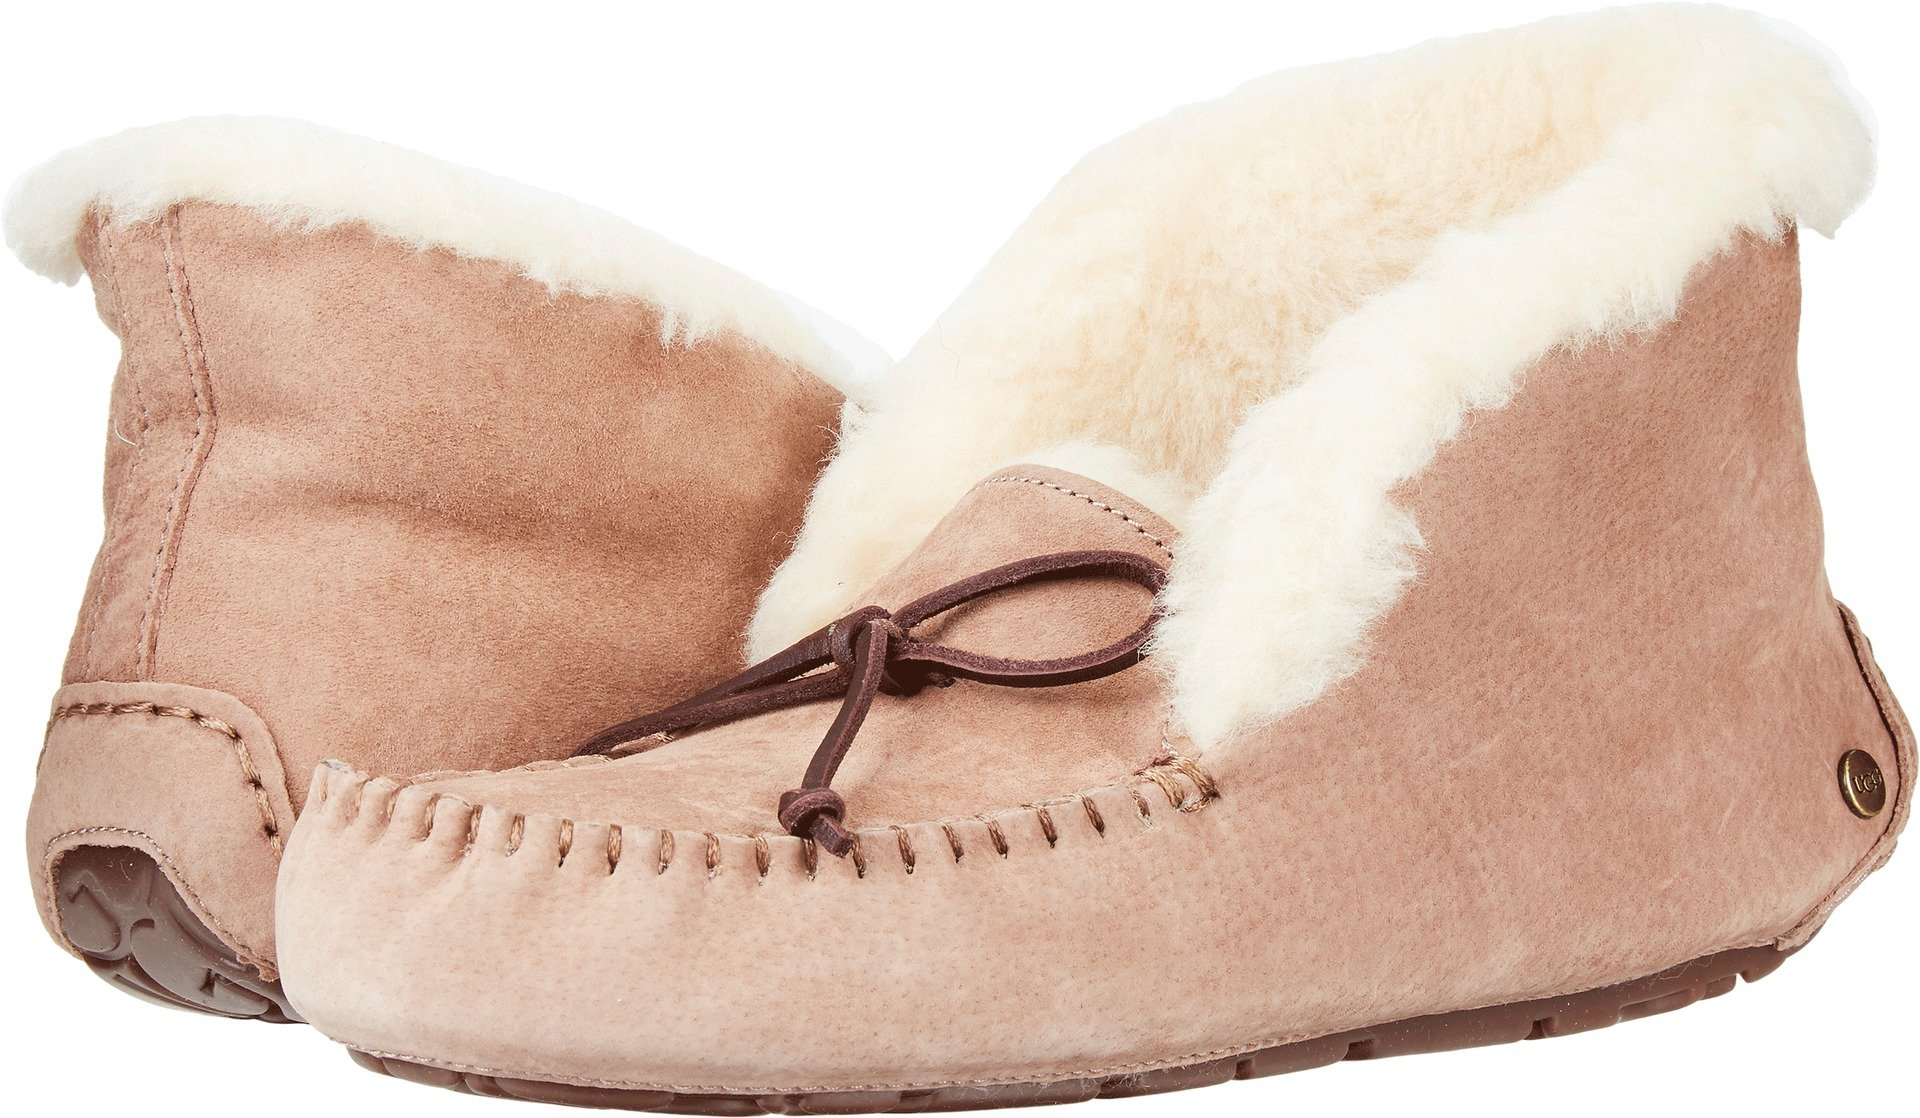 UGG Women's Alena Moccasin, Fawn, 8 M US